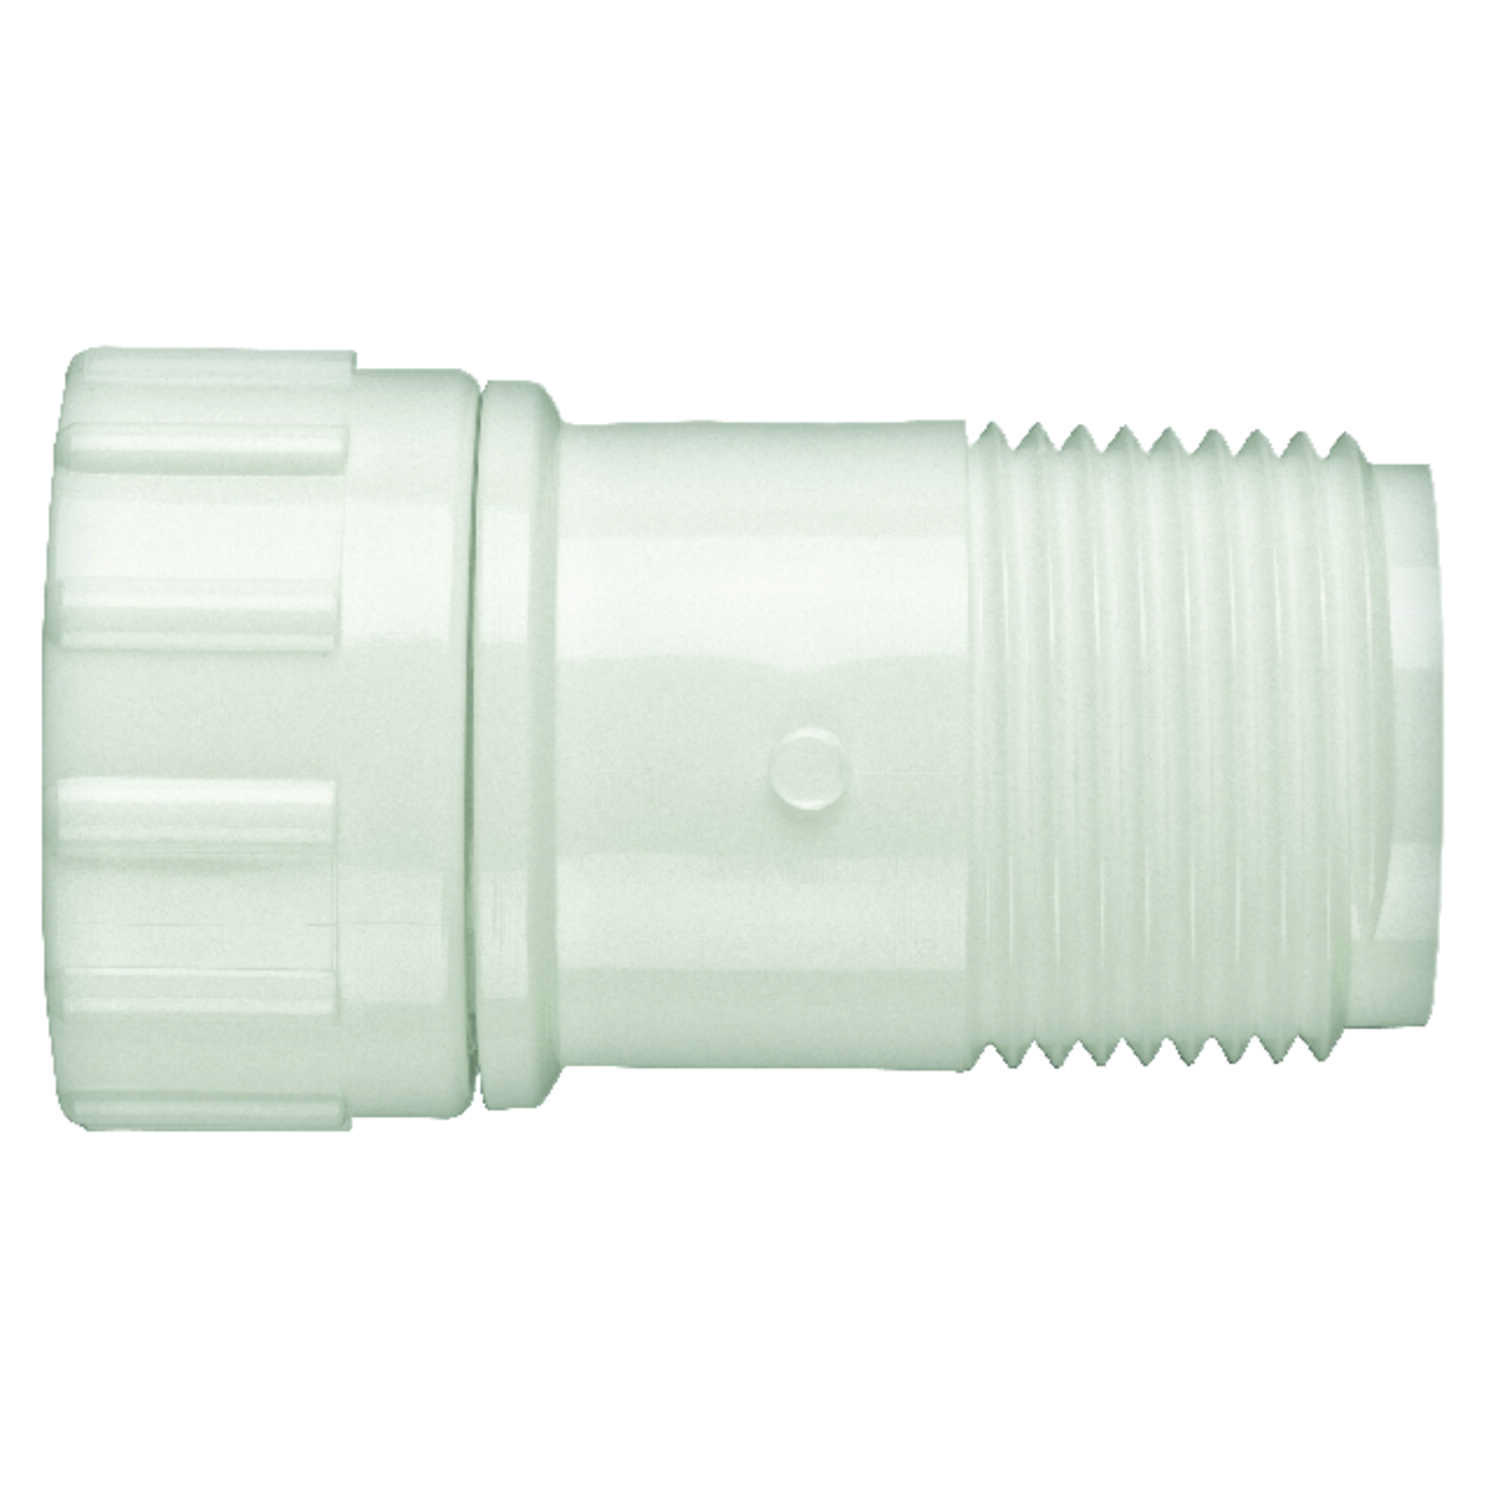 Lasco  PVC  Hose Adapter  3/4 in. Dia. x 3/4 in. Dia. White  1 pk